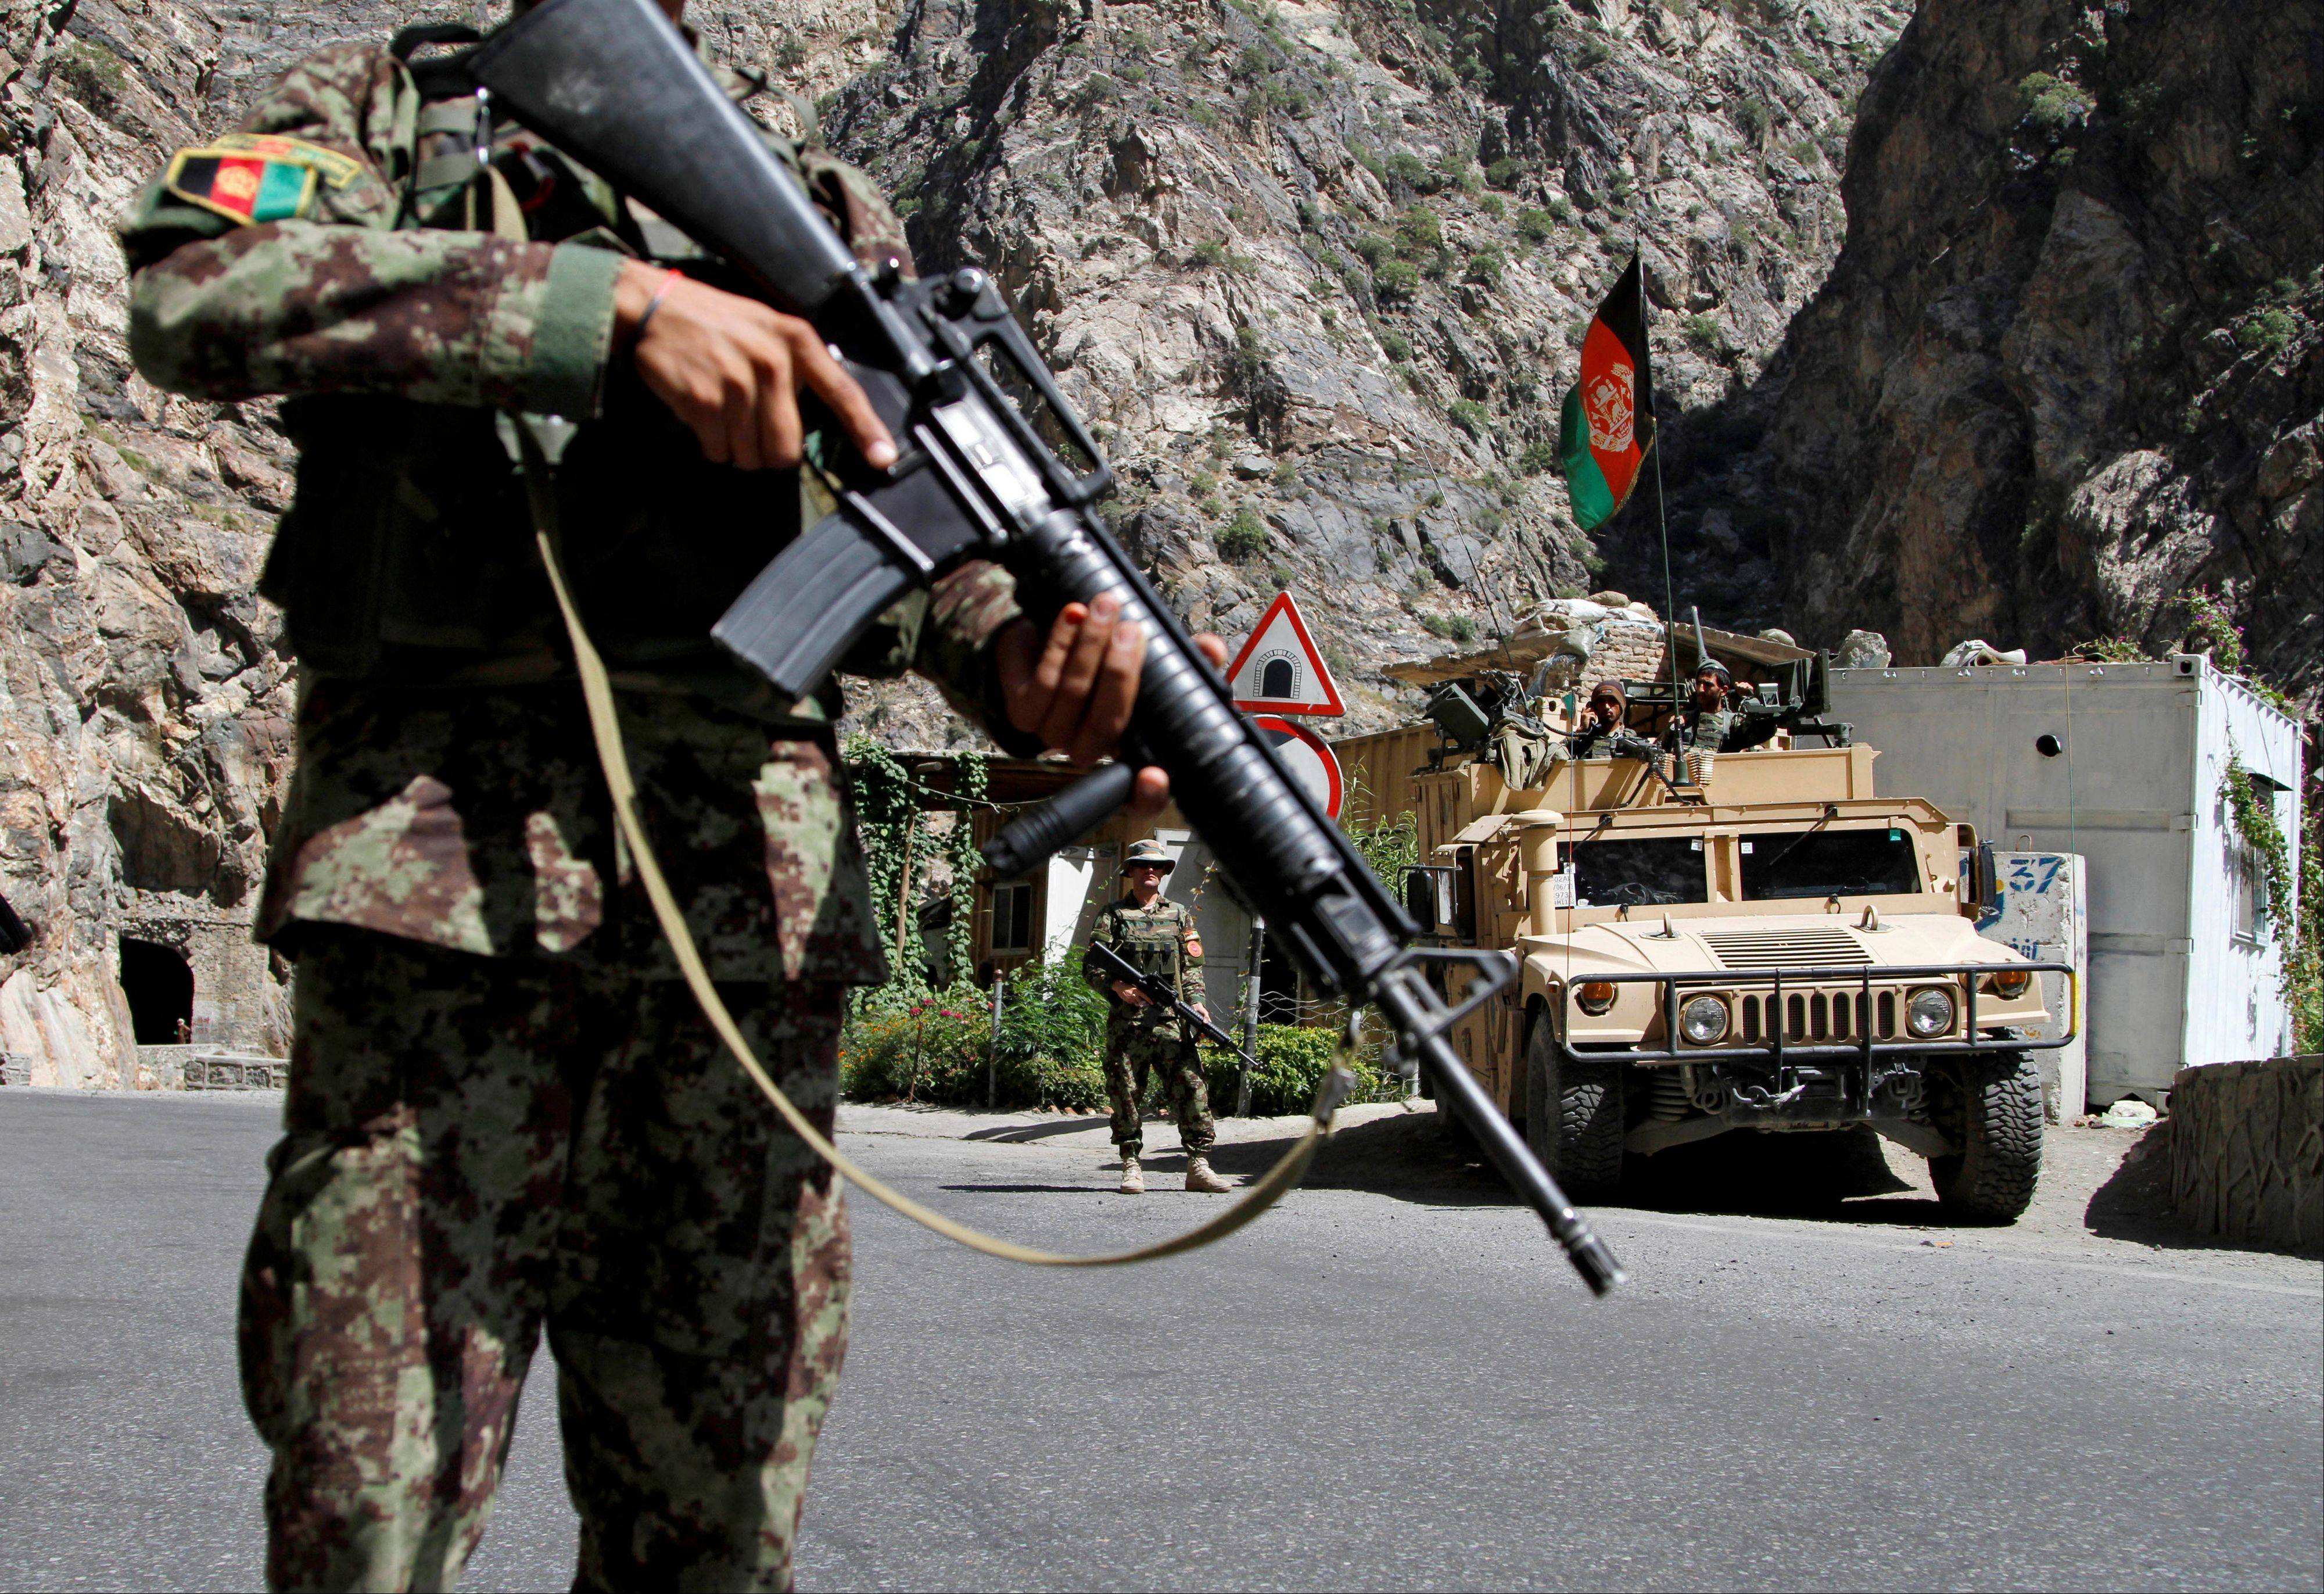 Afghan National Army soldiers stand guard on the outskirts of in Kabul, Afghanistan. Ghazni and neighboring Wardak province have become a hotbed of insurgent activity in the past year, mainly along the main highway which links Kabul to Kandahar in the south and runs through Gulistani�s hometown. Dozens of abductions and killings are reported weekly on the highway, and Afghans are beginning to worry that the nascent Afghan National Security Forces taking over the defense of Afghanistan won't be up to the job.